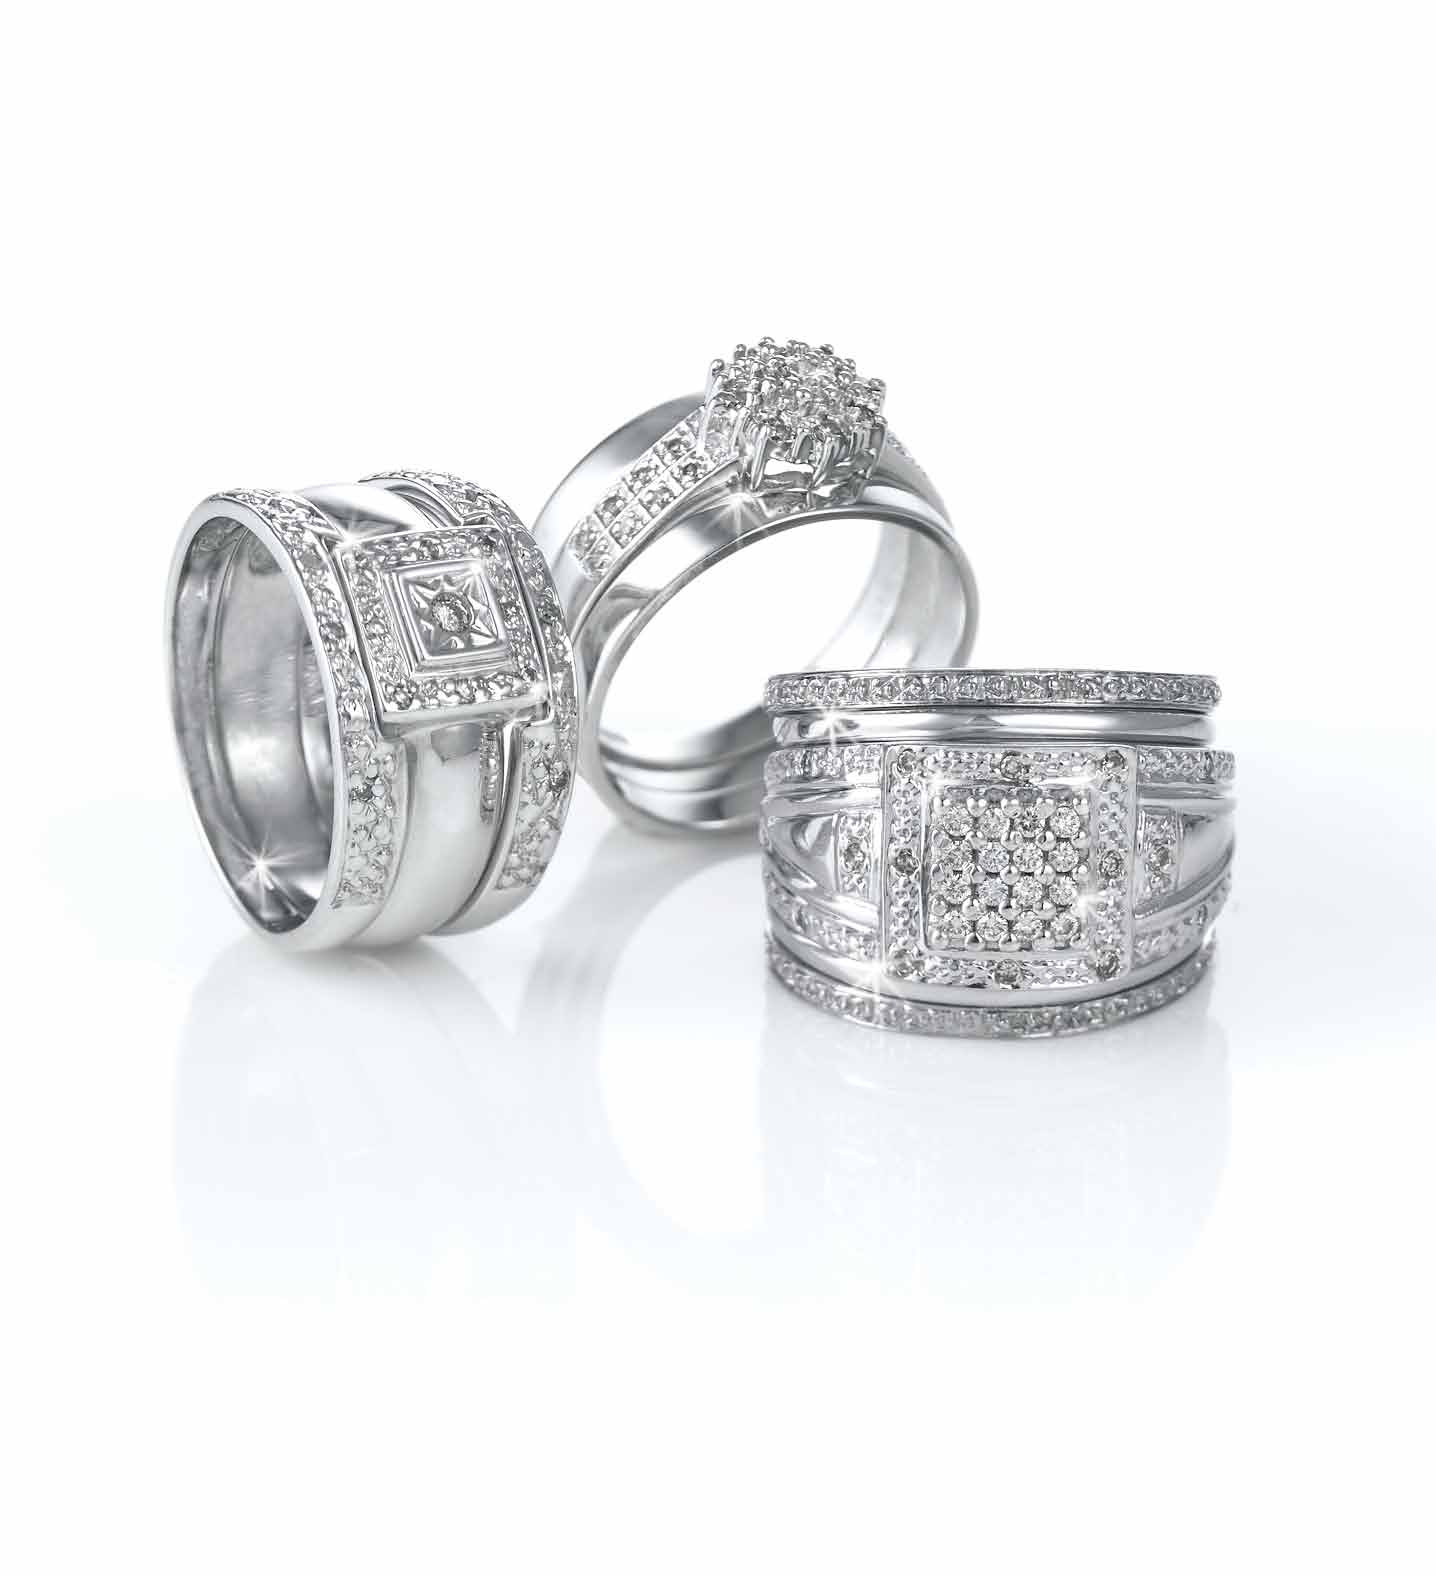 mens wedding rings south africa prices wedding ring prices 9ct Diamond Wedding Rings fltr R4 00 R5 00 R6